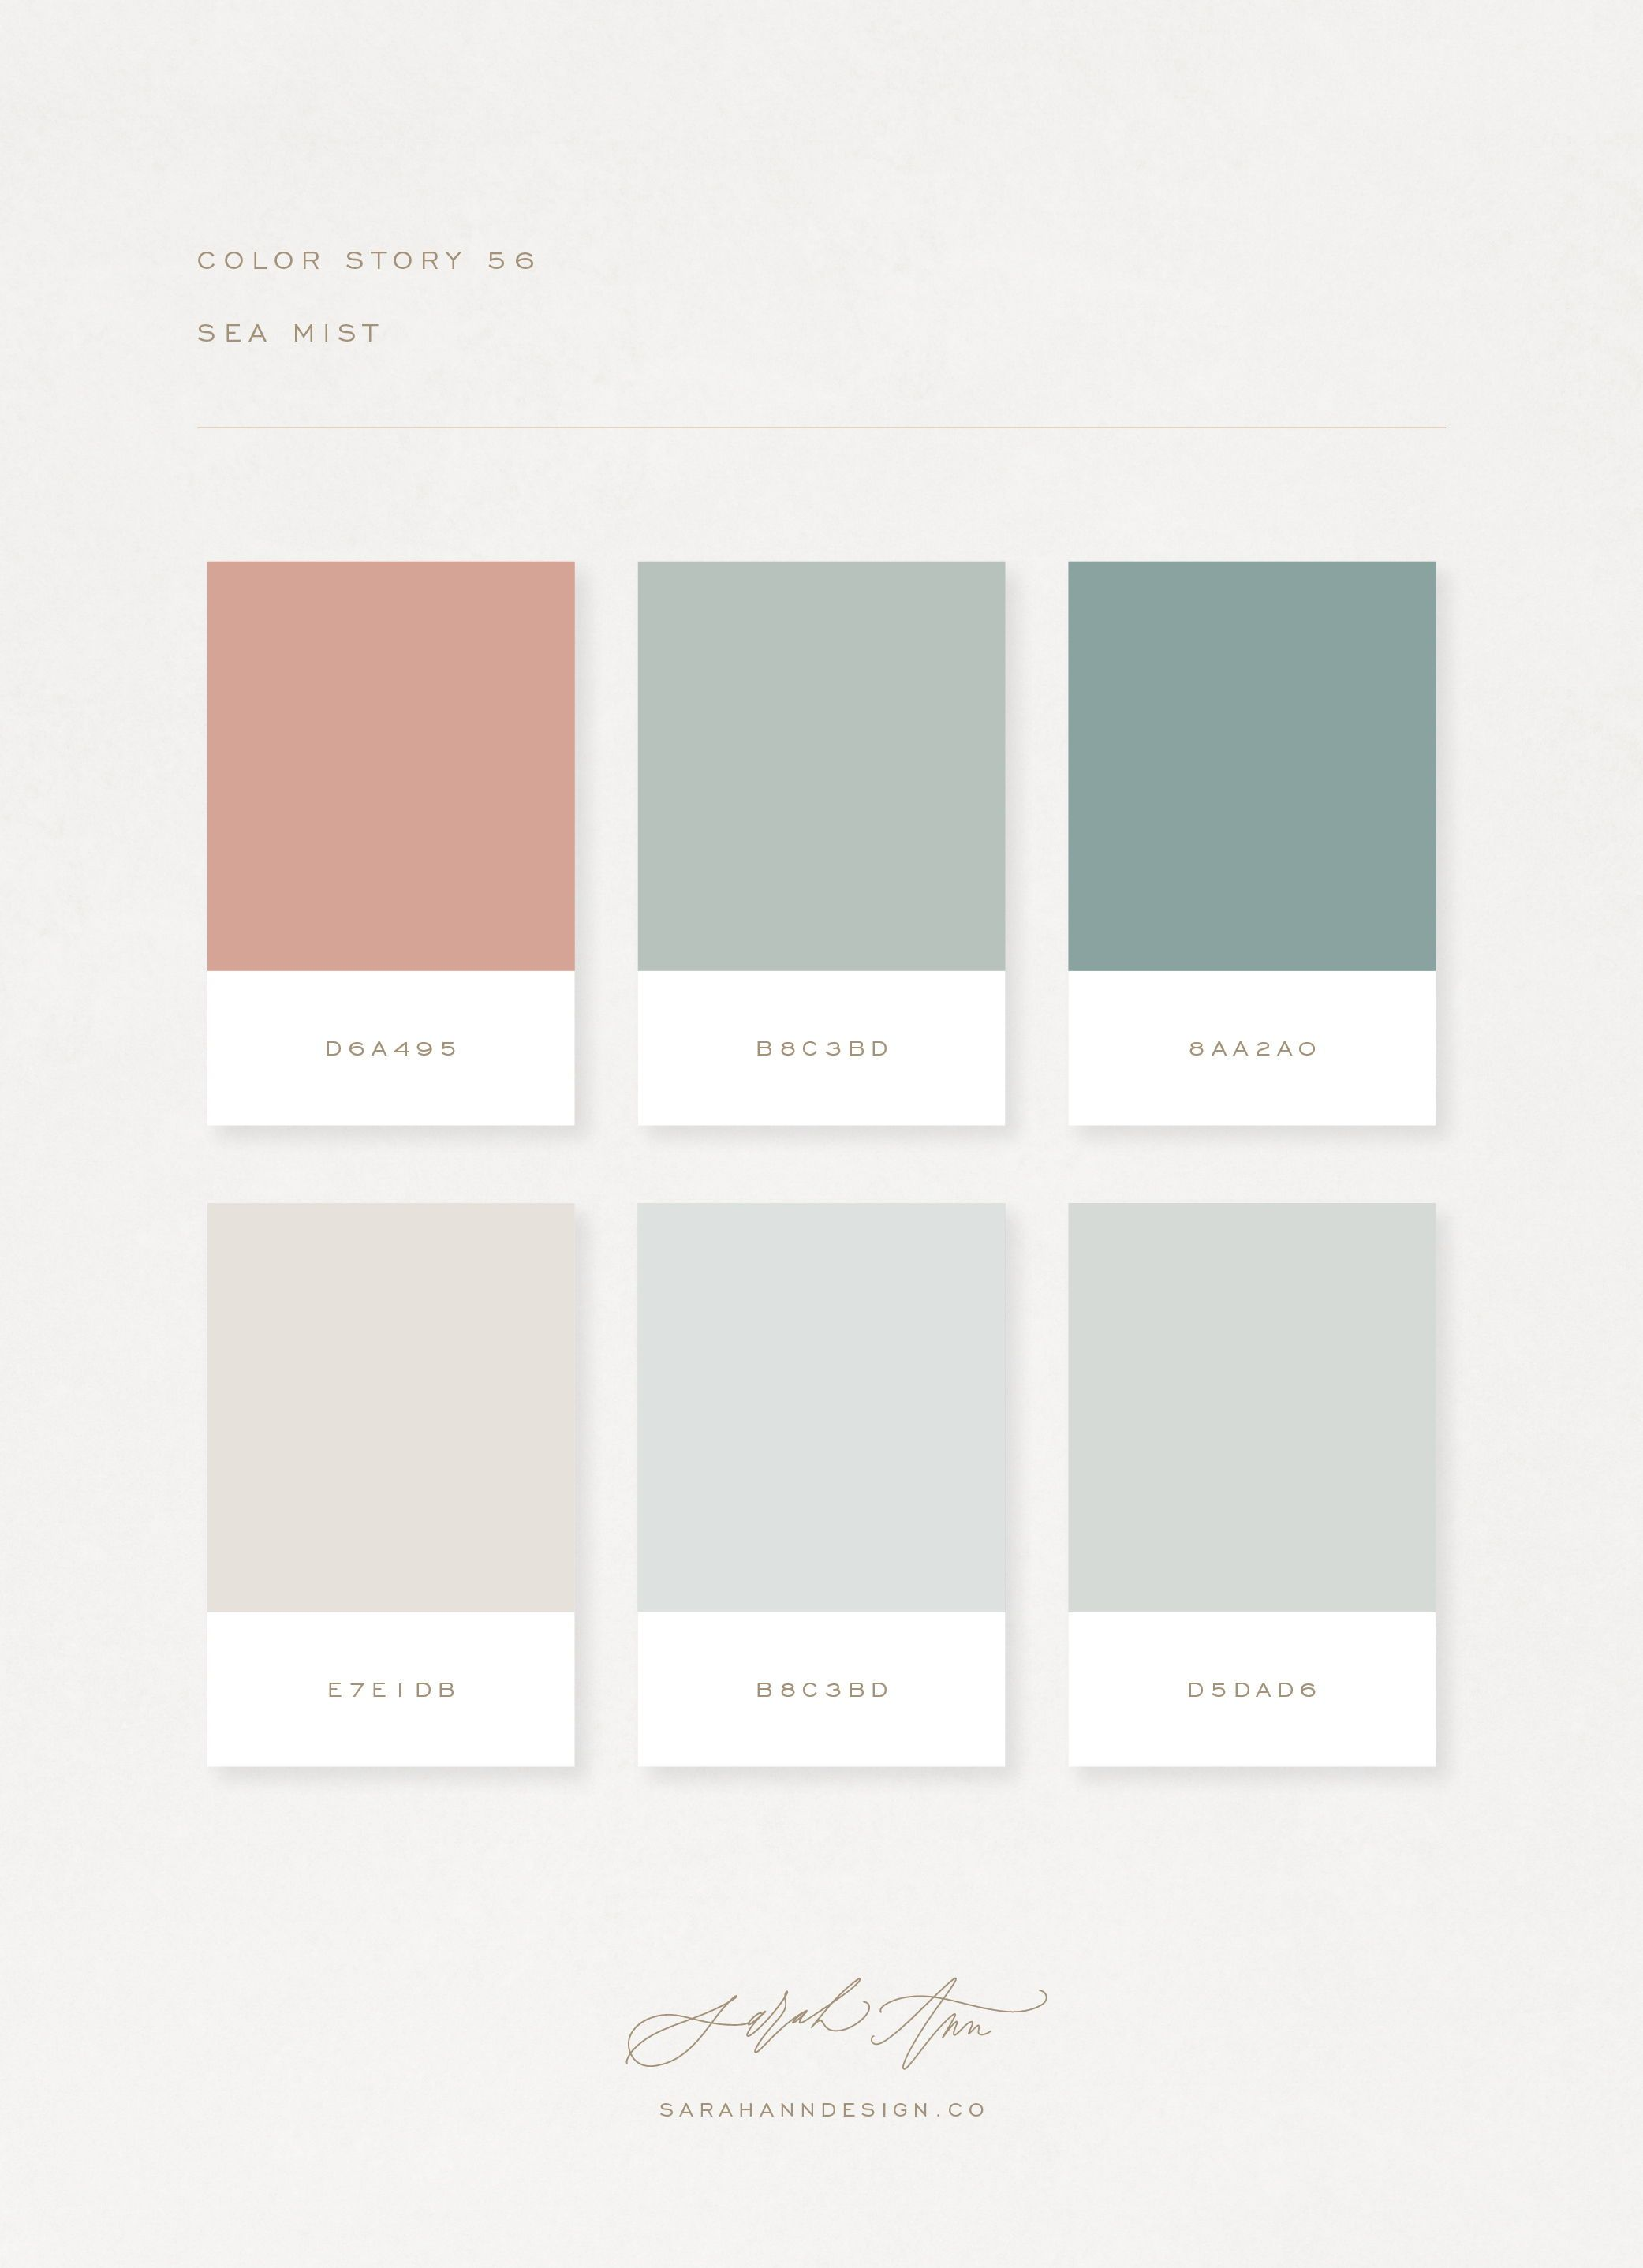 The Color Story Library: A Curated Collection of 100 Color Palettes